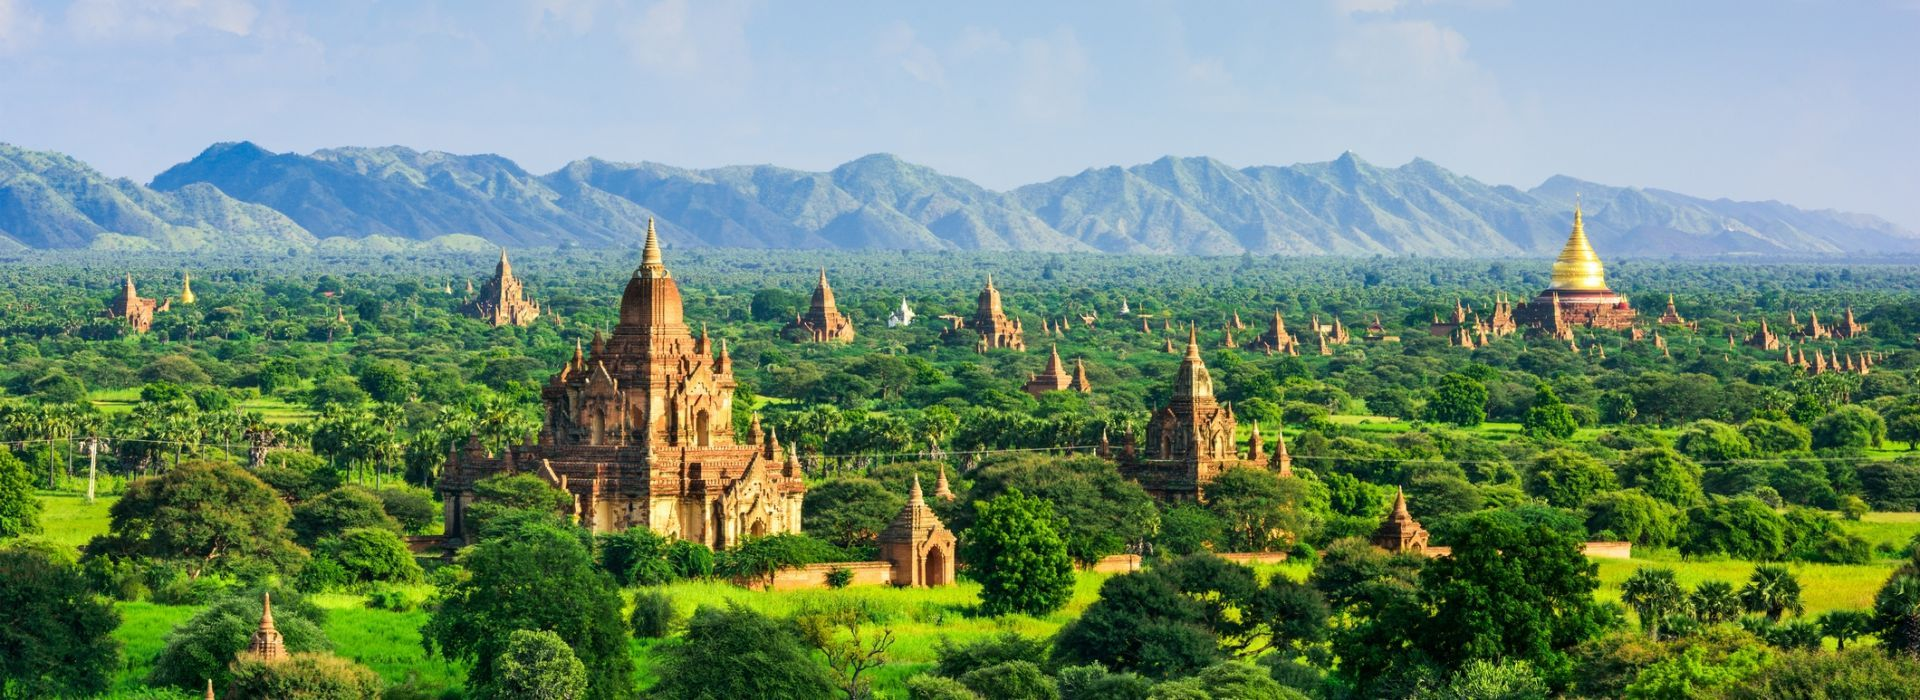 Sightseeing, attractions, culture and history Tours in Mandalay